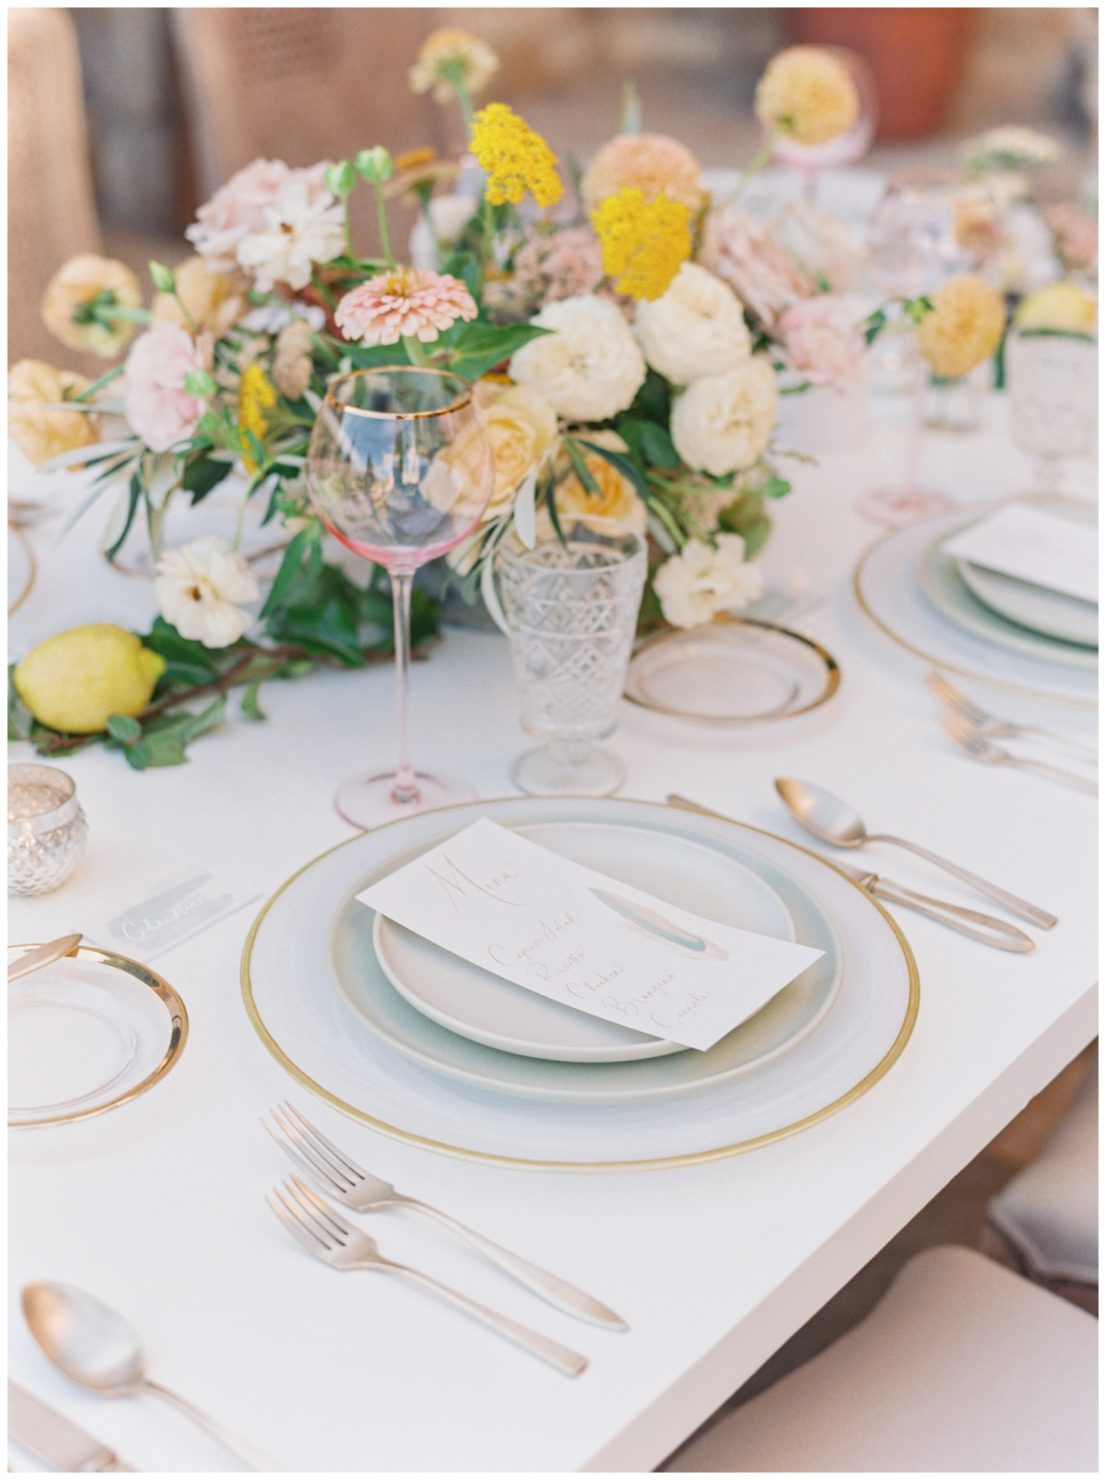 Stylish And Summery Wedding At A Winery In Greece Table Setting Details